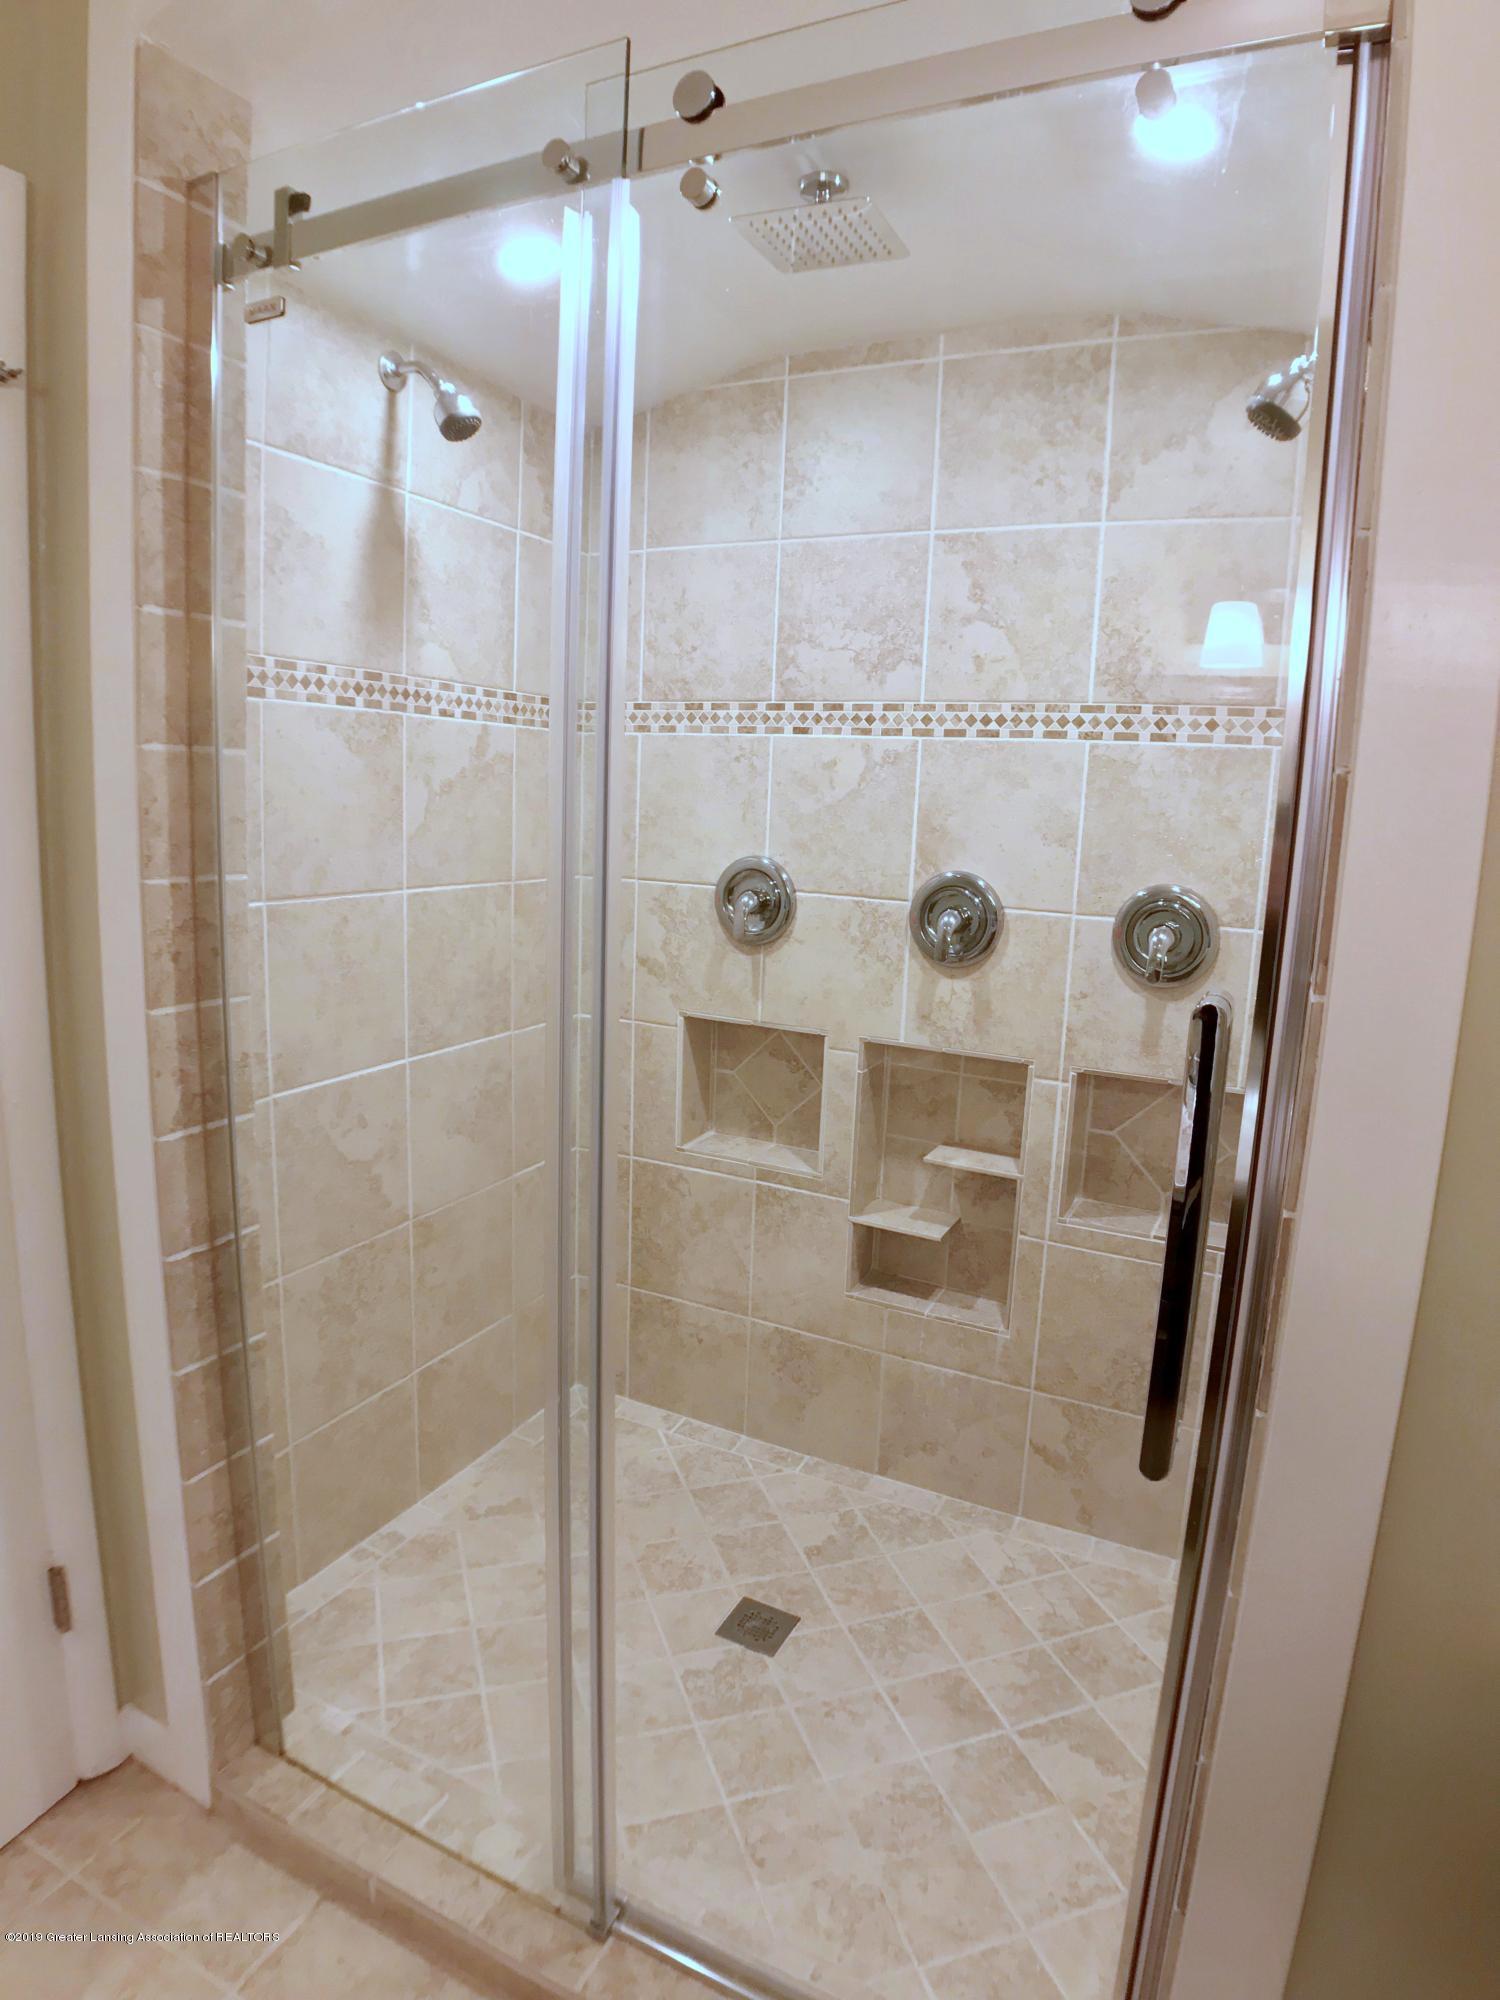 211 Loree Dr - Master Bath - 16